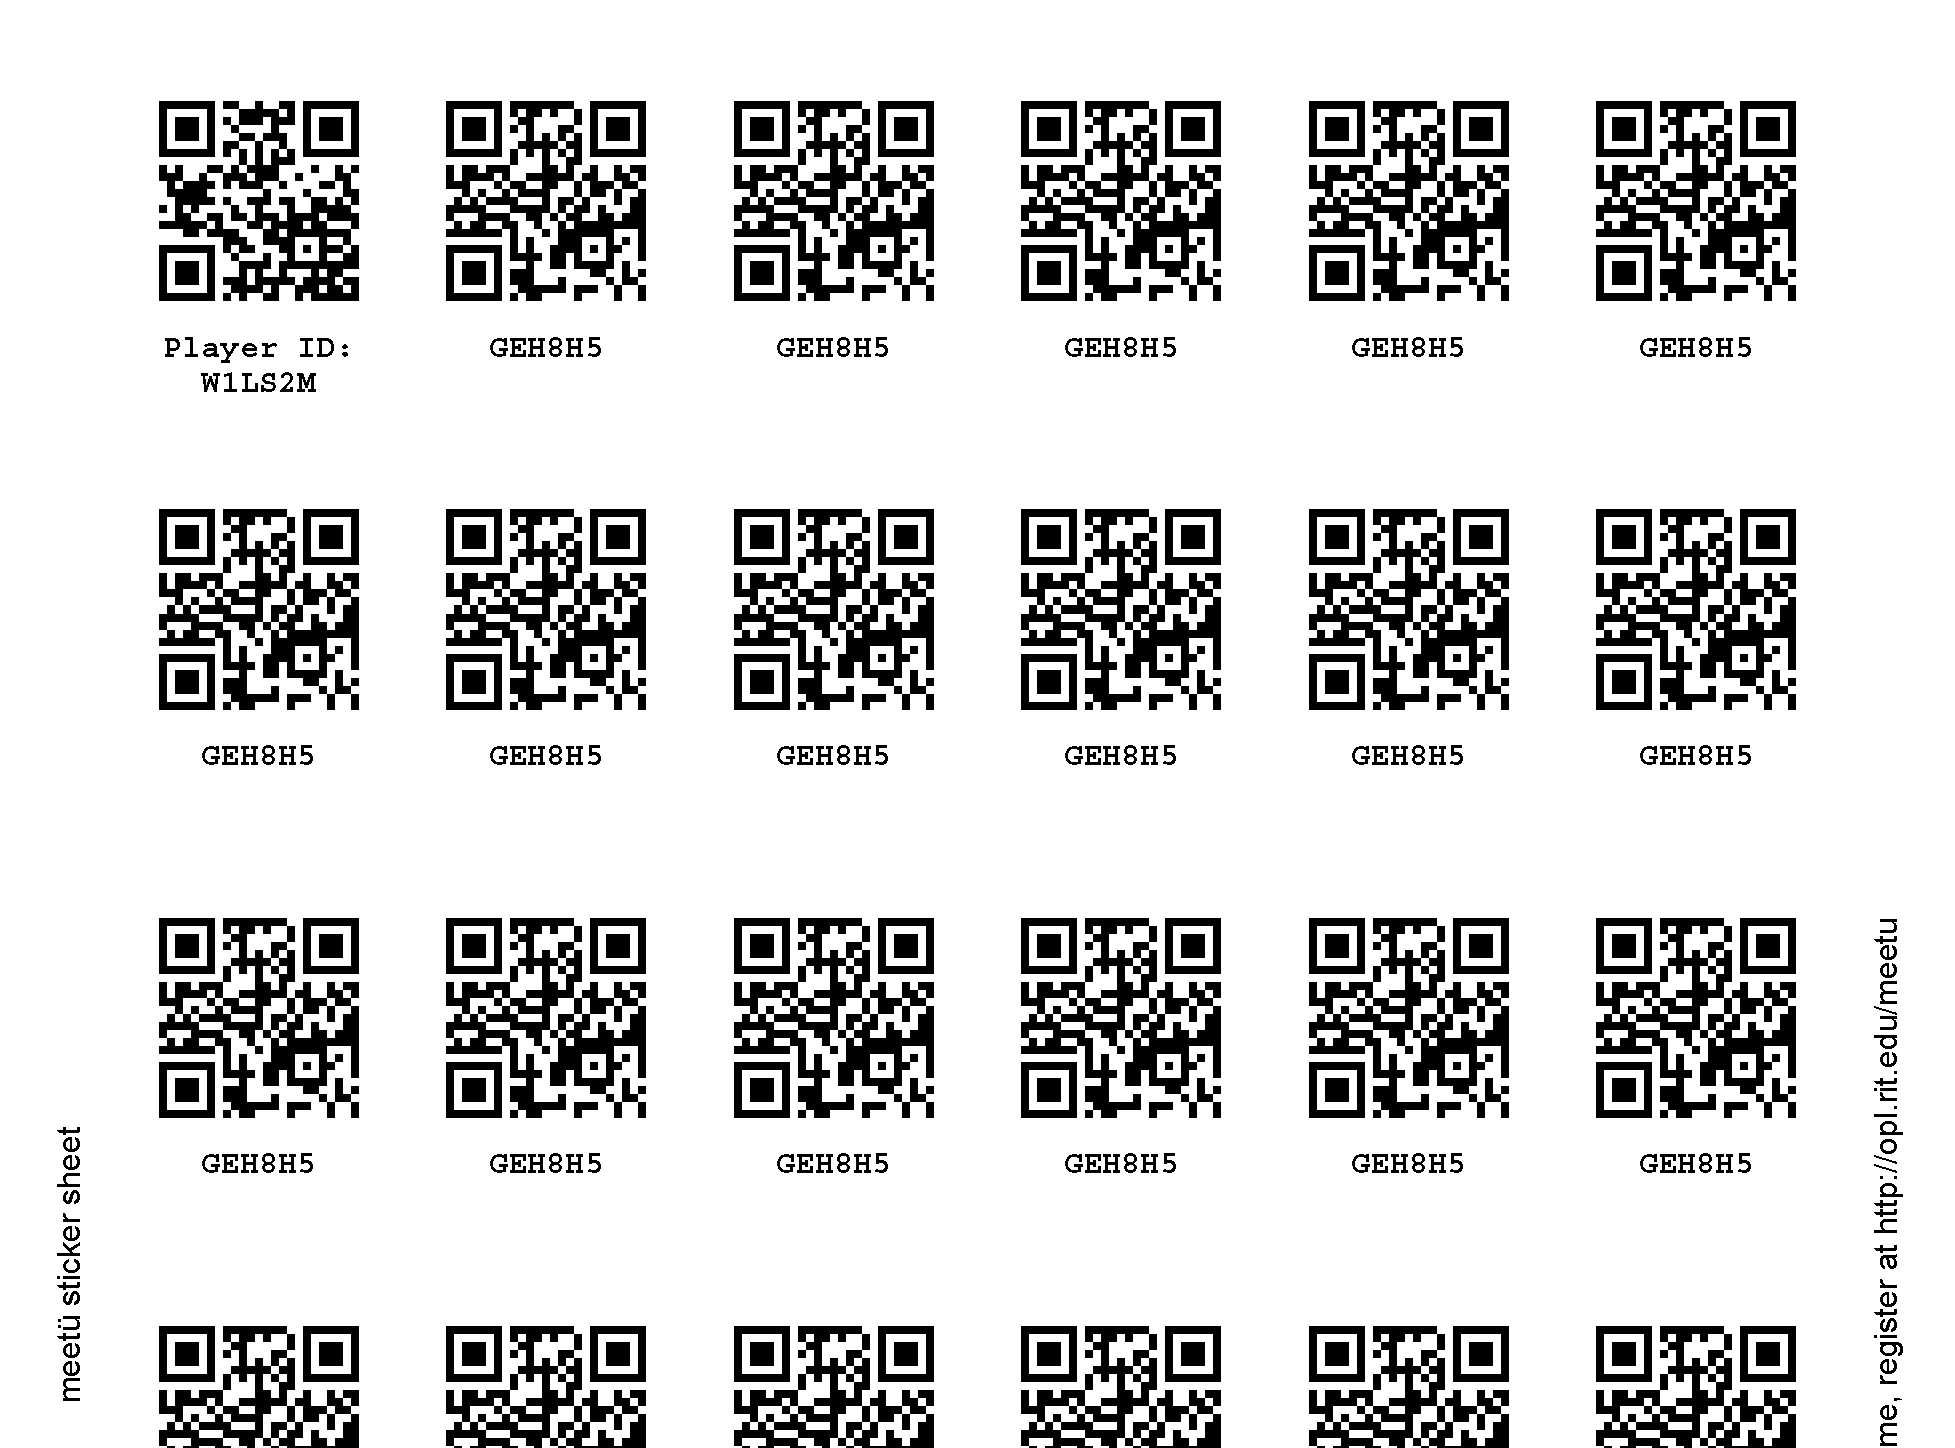 qr Code Algorithm Stating That qr Codes Are